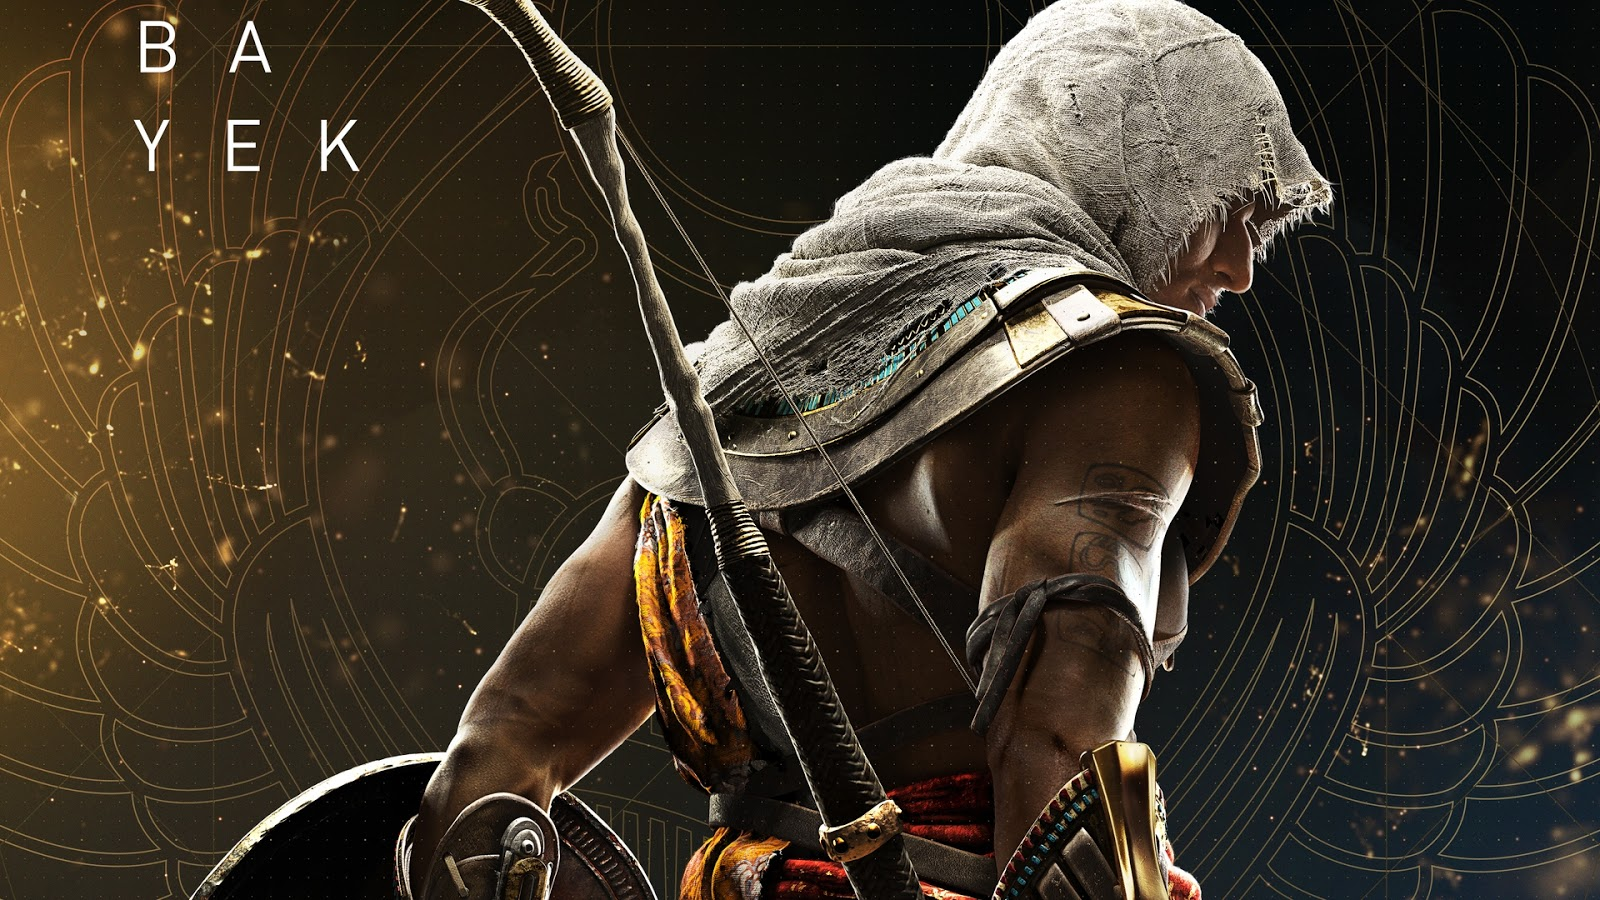 Amazing   Wallpaper Horse Assassin'S Creed - 842953  Best Photo Reference_74957.jpg